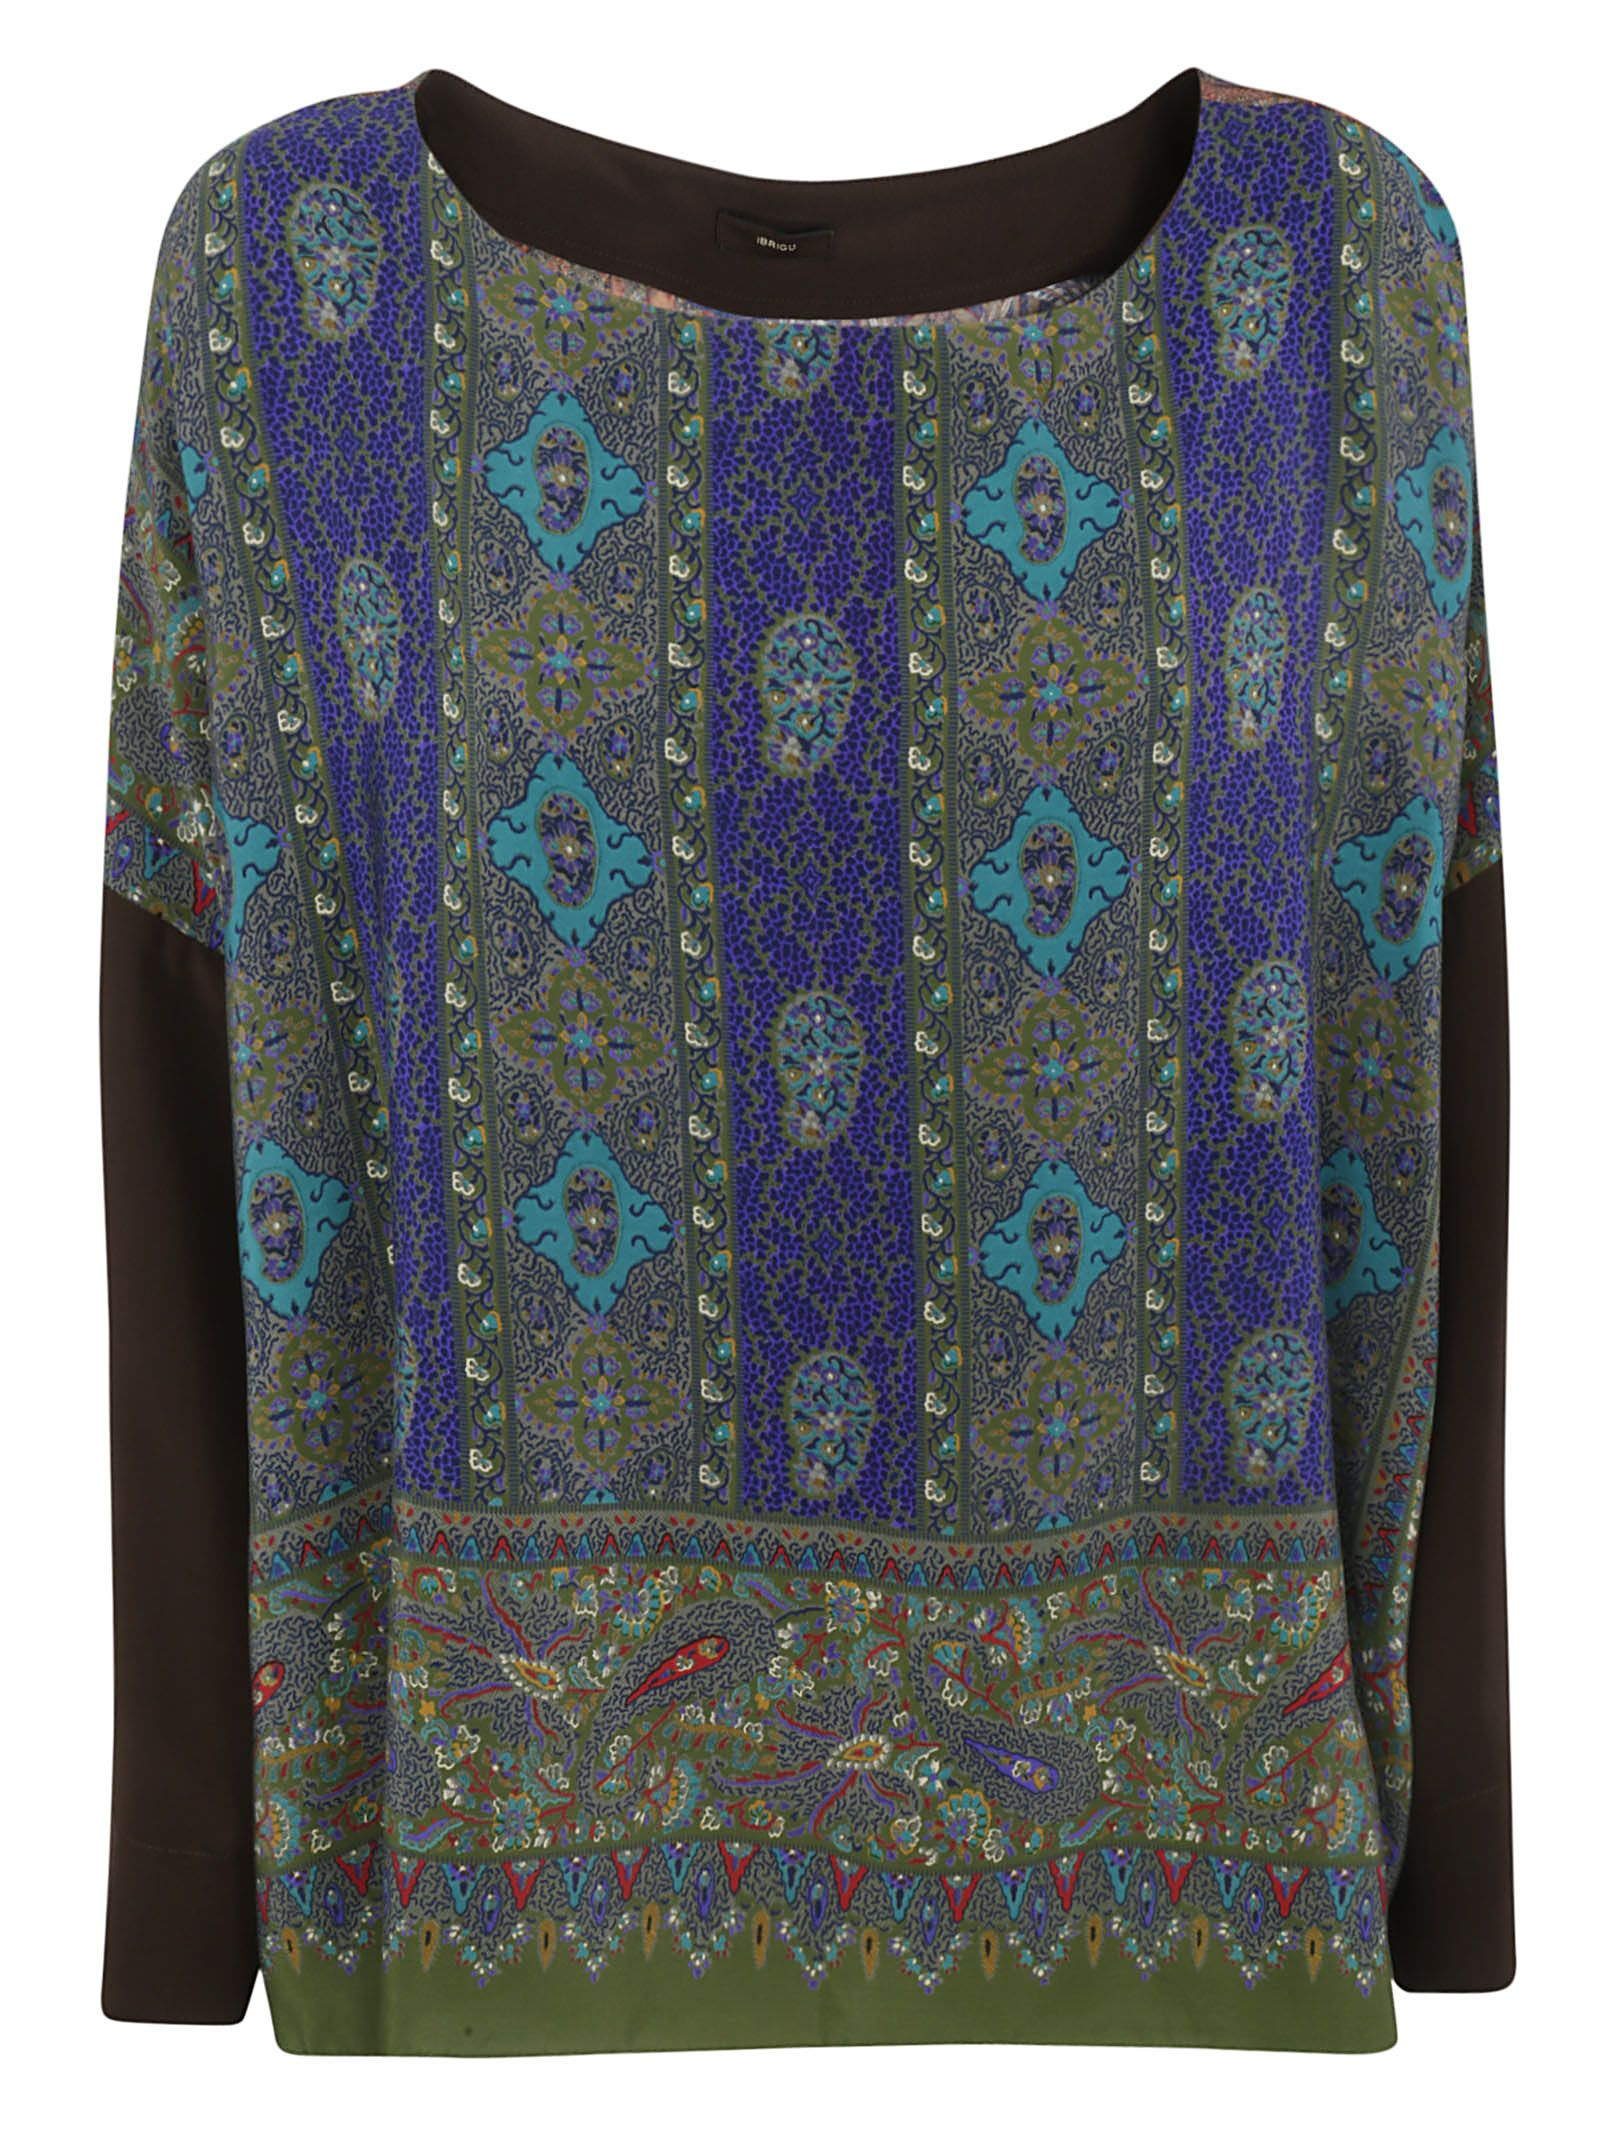 outlet store 468da a4b54 Printed Top, Blue